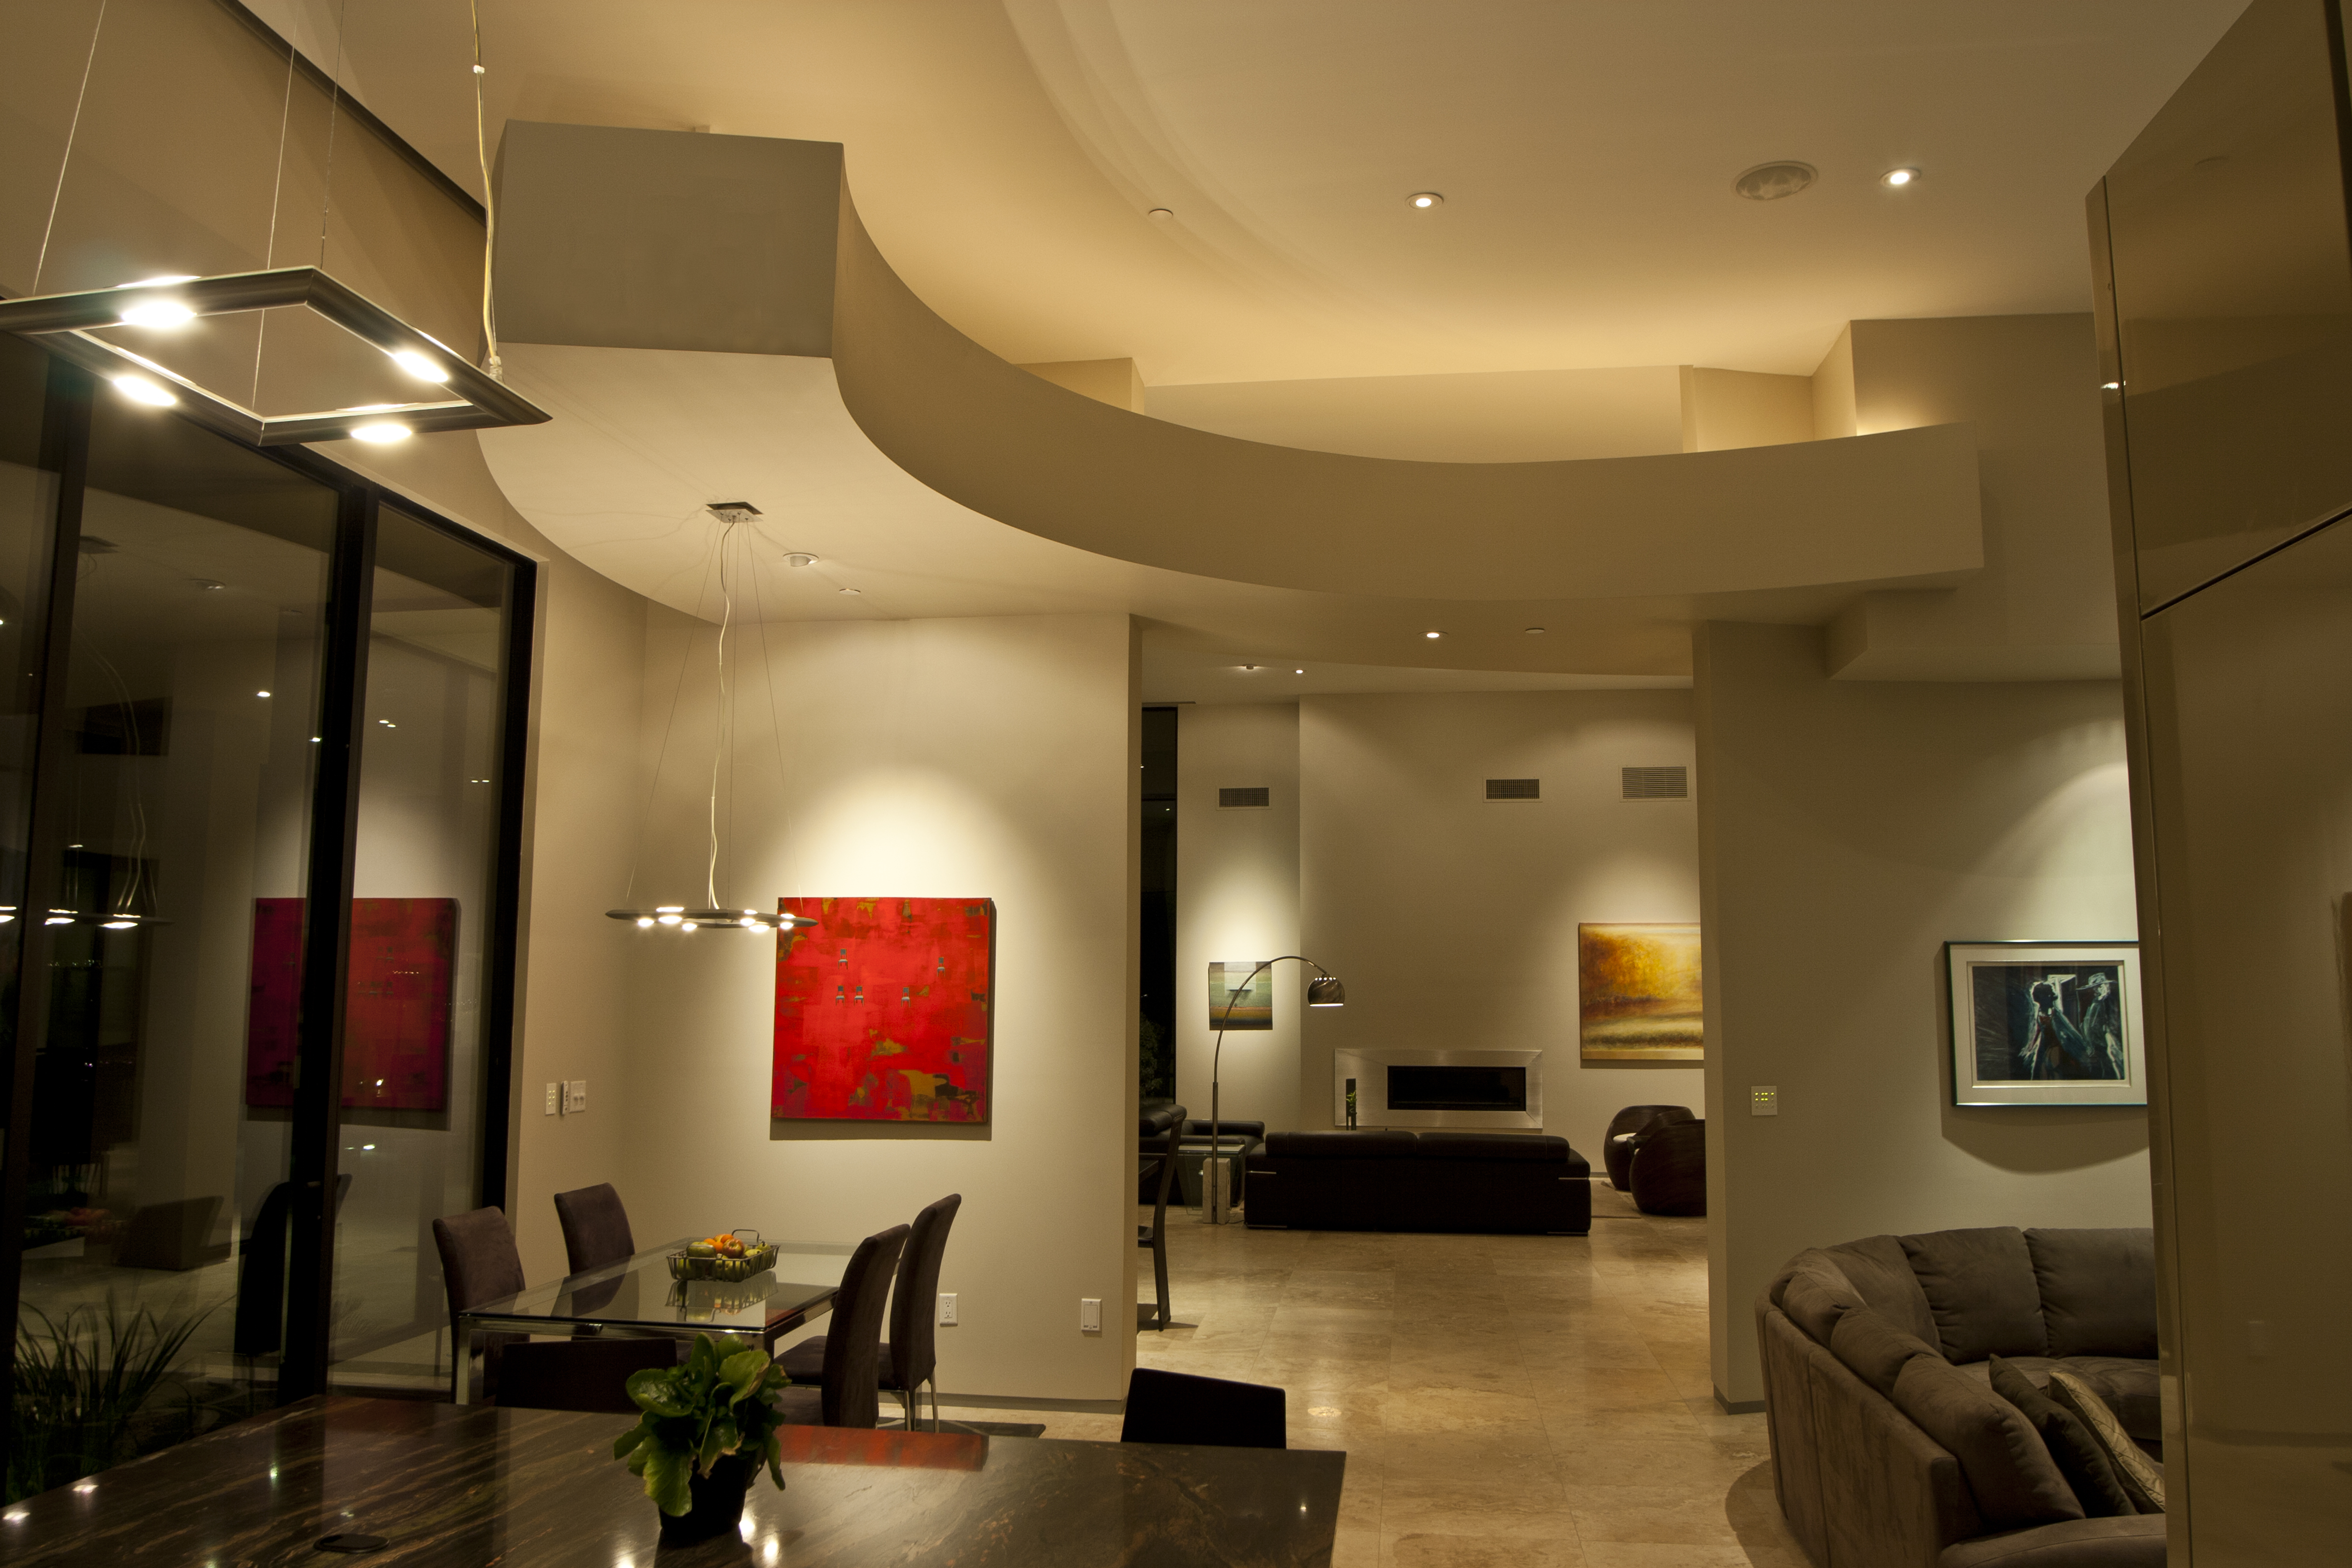 Custom interior lighting to evoke emotion and drama.